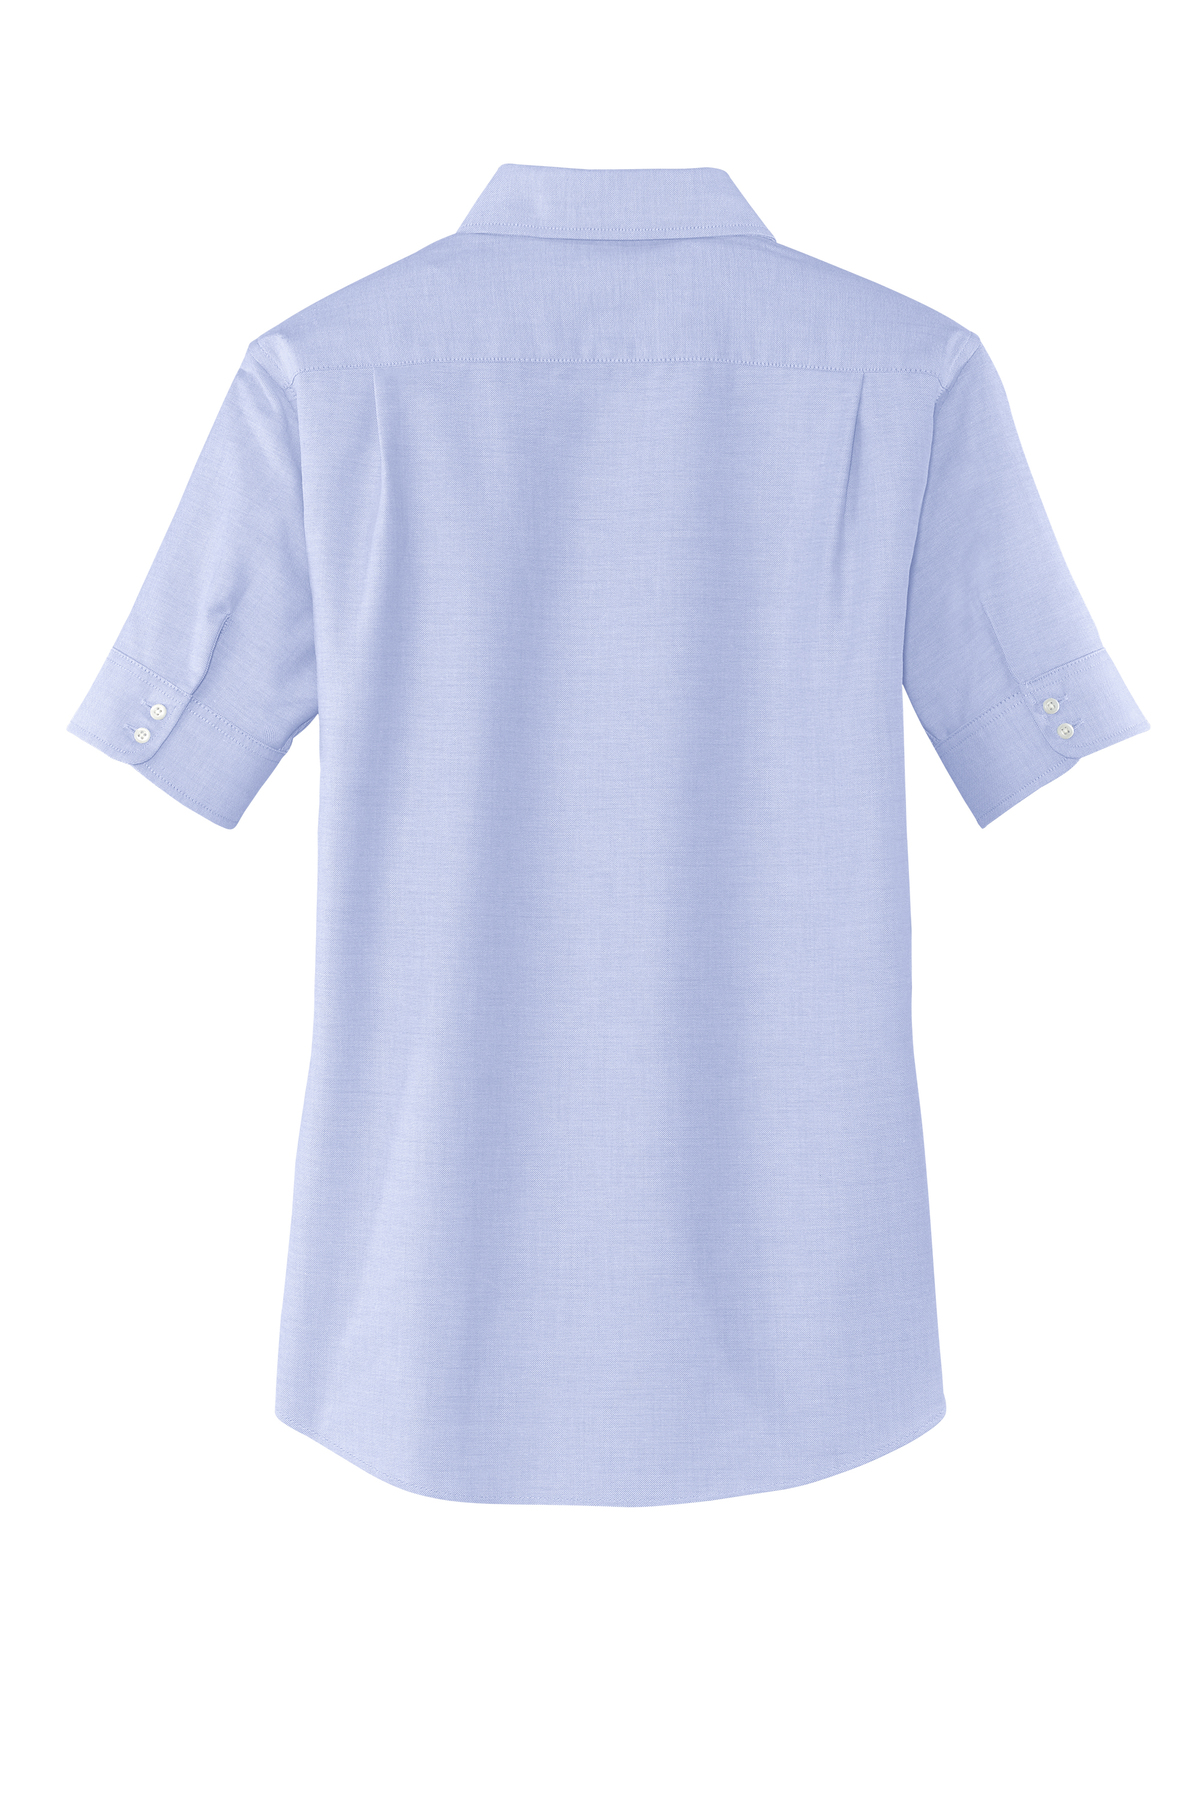 31fefbdcacc057 ... Port Authority® Ladies Short Sleeve SuperPro™ Oxford Shirt. A maximum of  8 logos have been uploaded. Please remove a logo from My Logos to continue